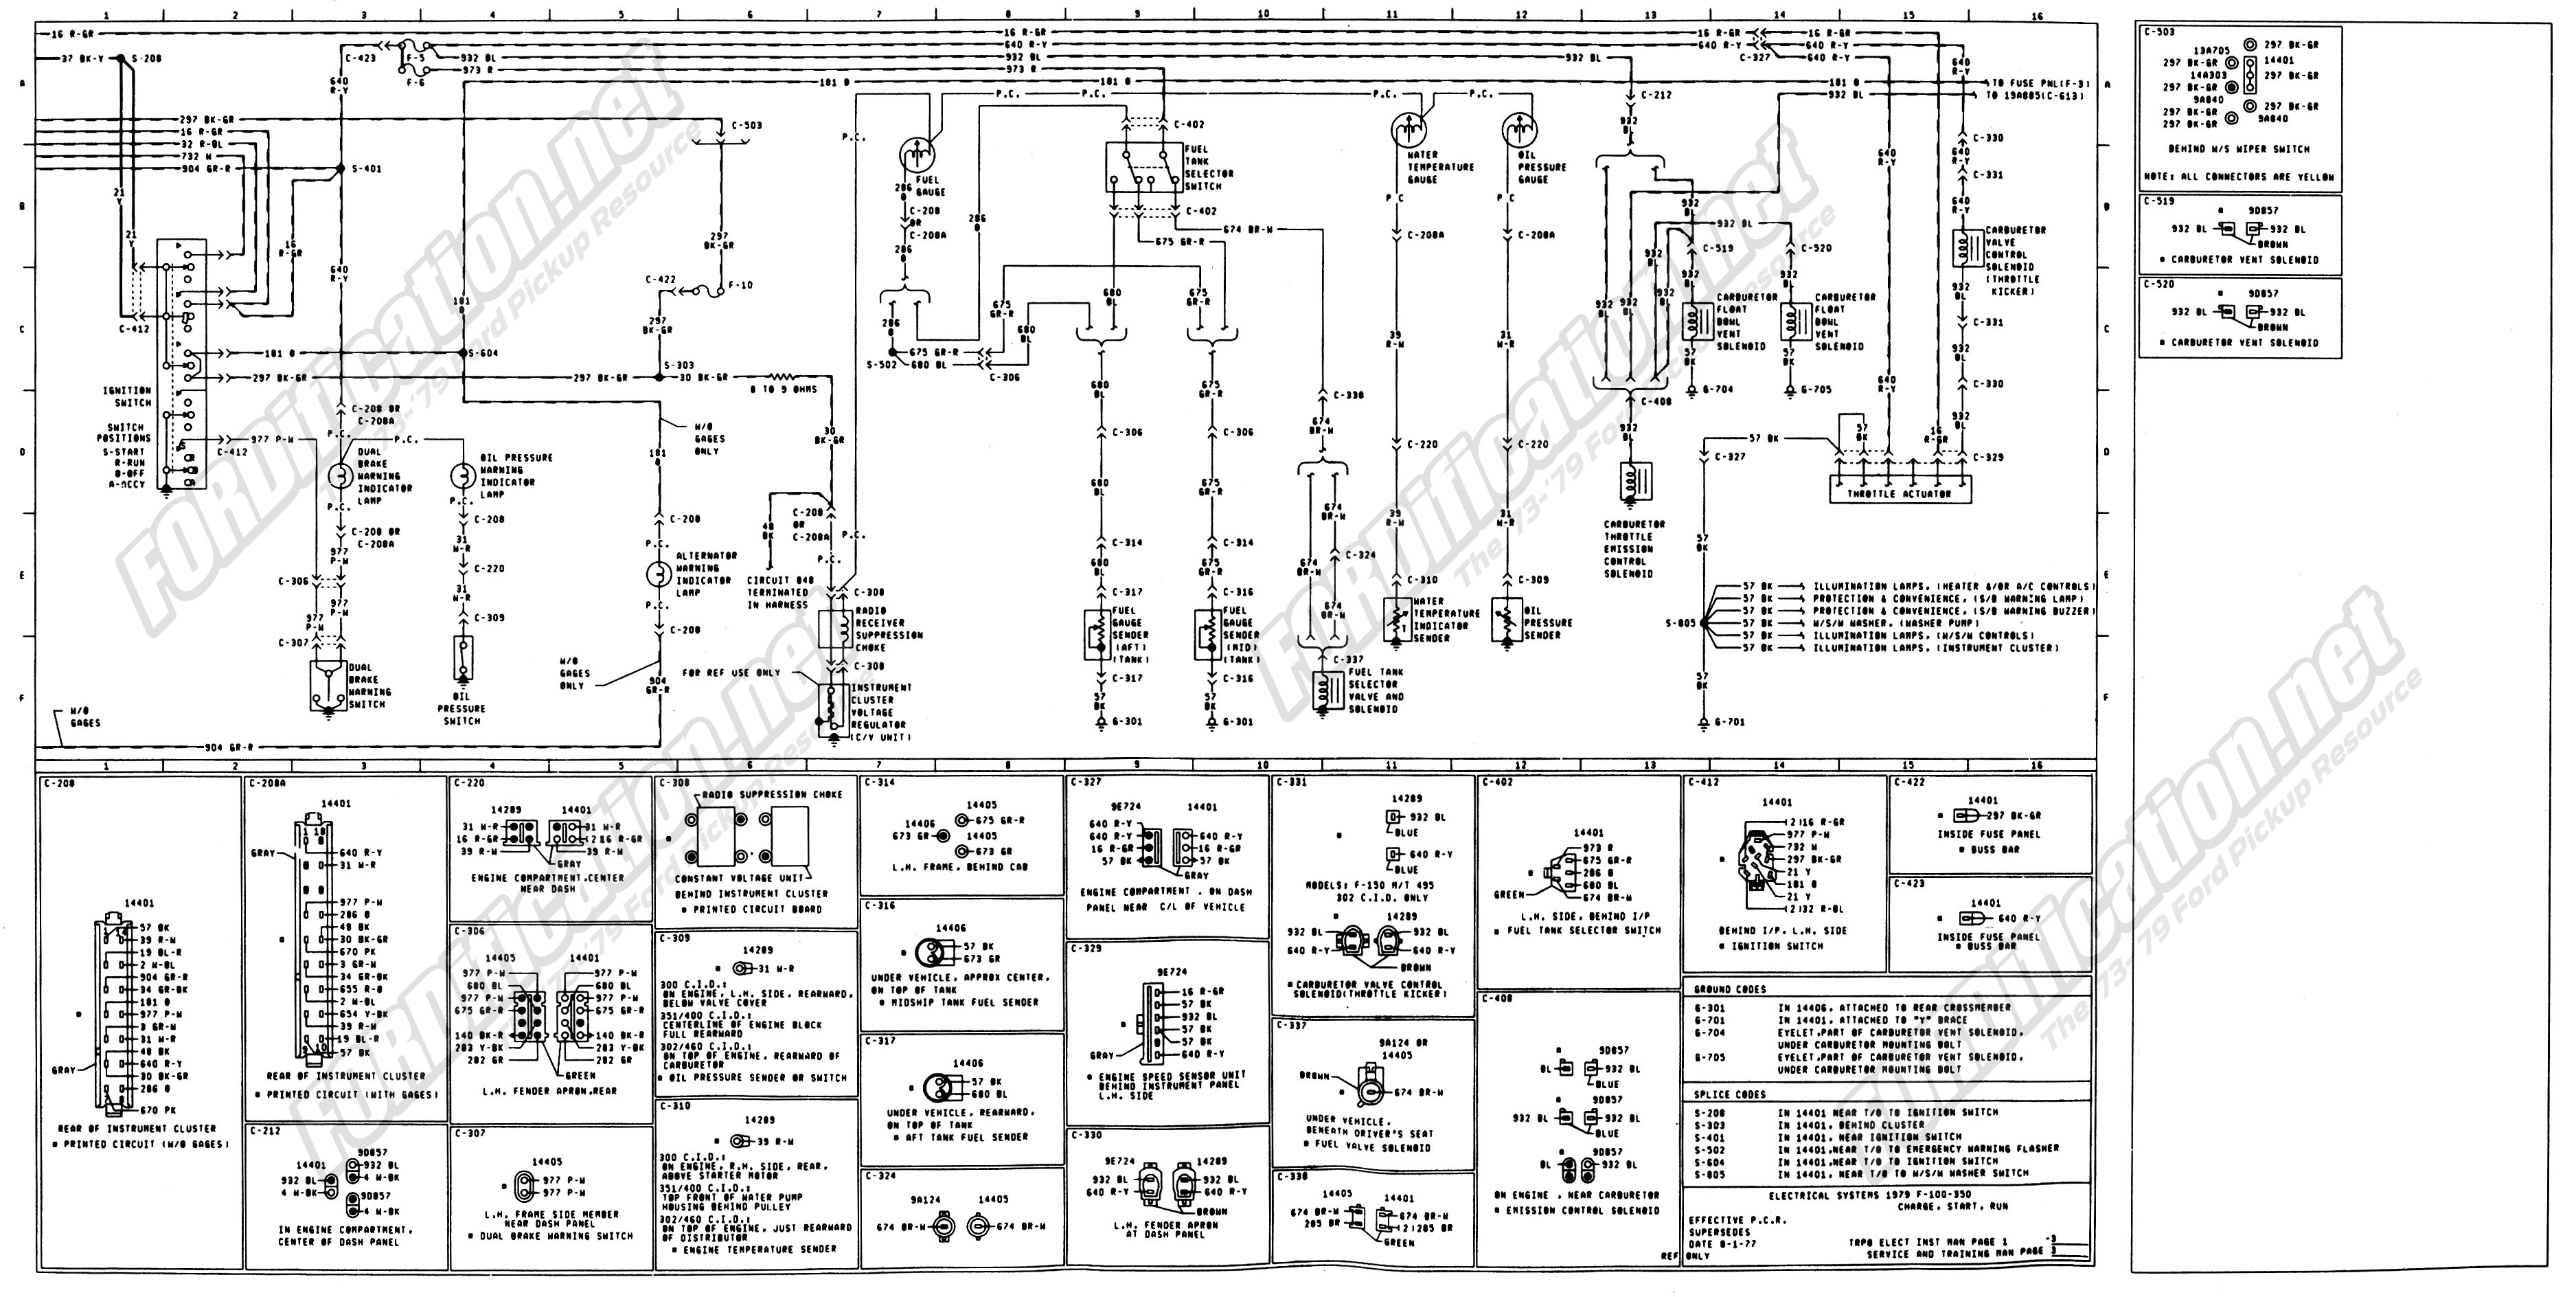 Wiring Diagram For 1973 Ford F 100 Wiring Diagram Inspection Inspection Consorziofiuggiturismo It